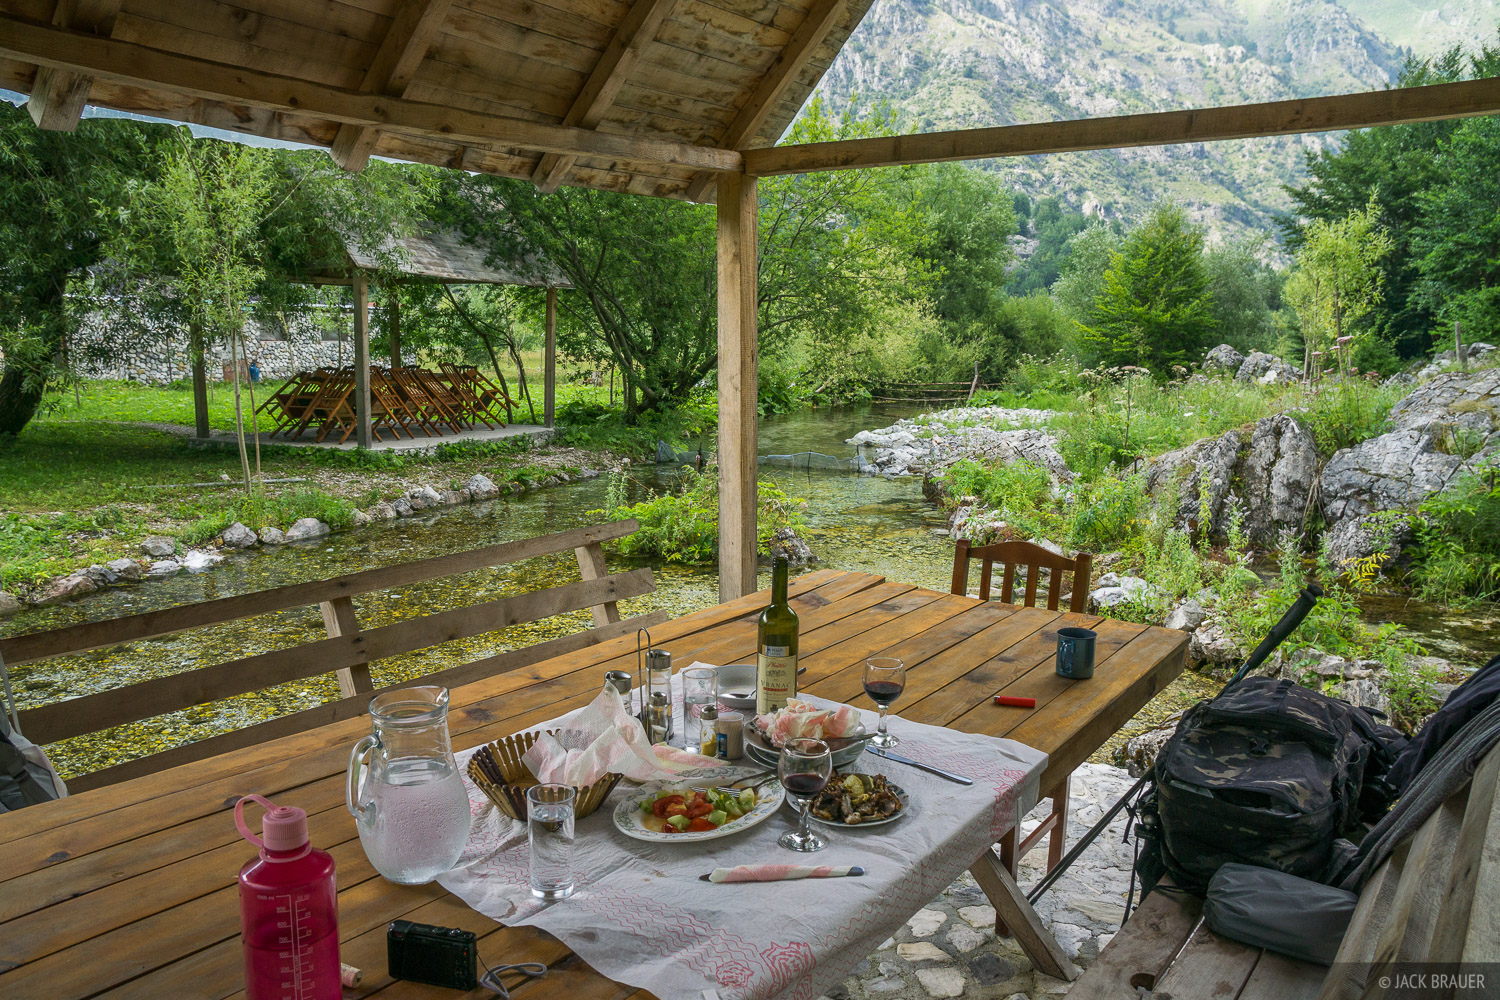 Remnants of a feast in Valbona, Albania.